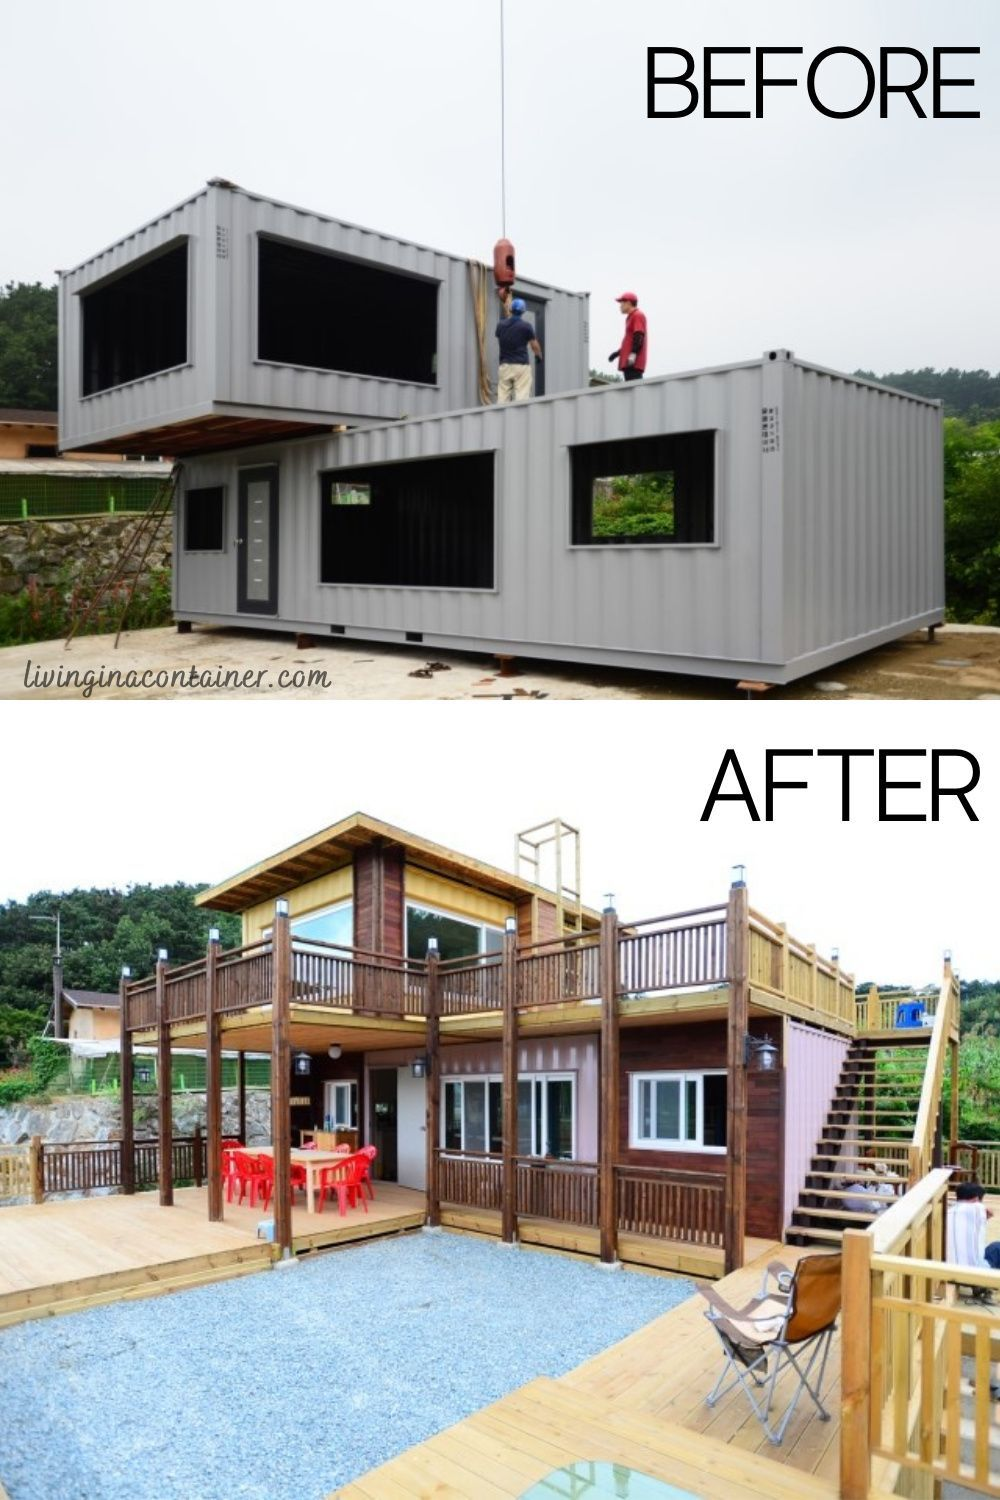 This Container House in South Korea Looks Really Authentic